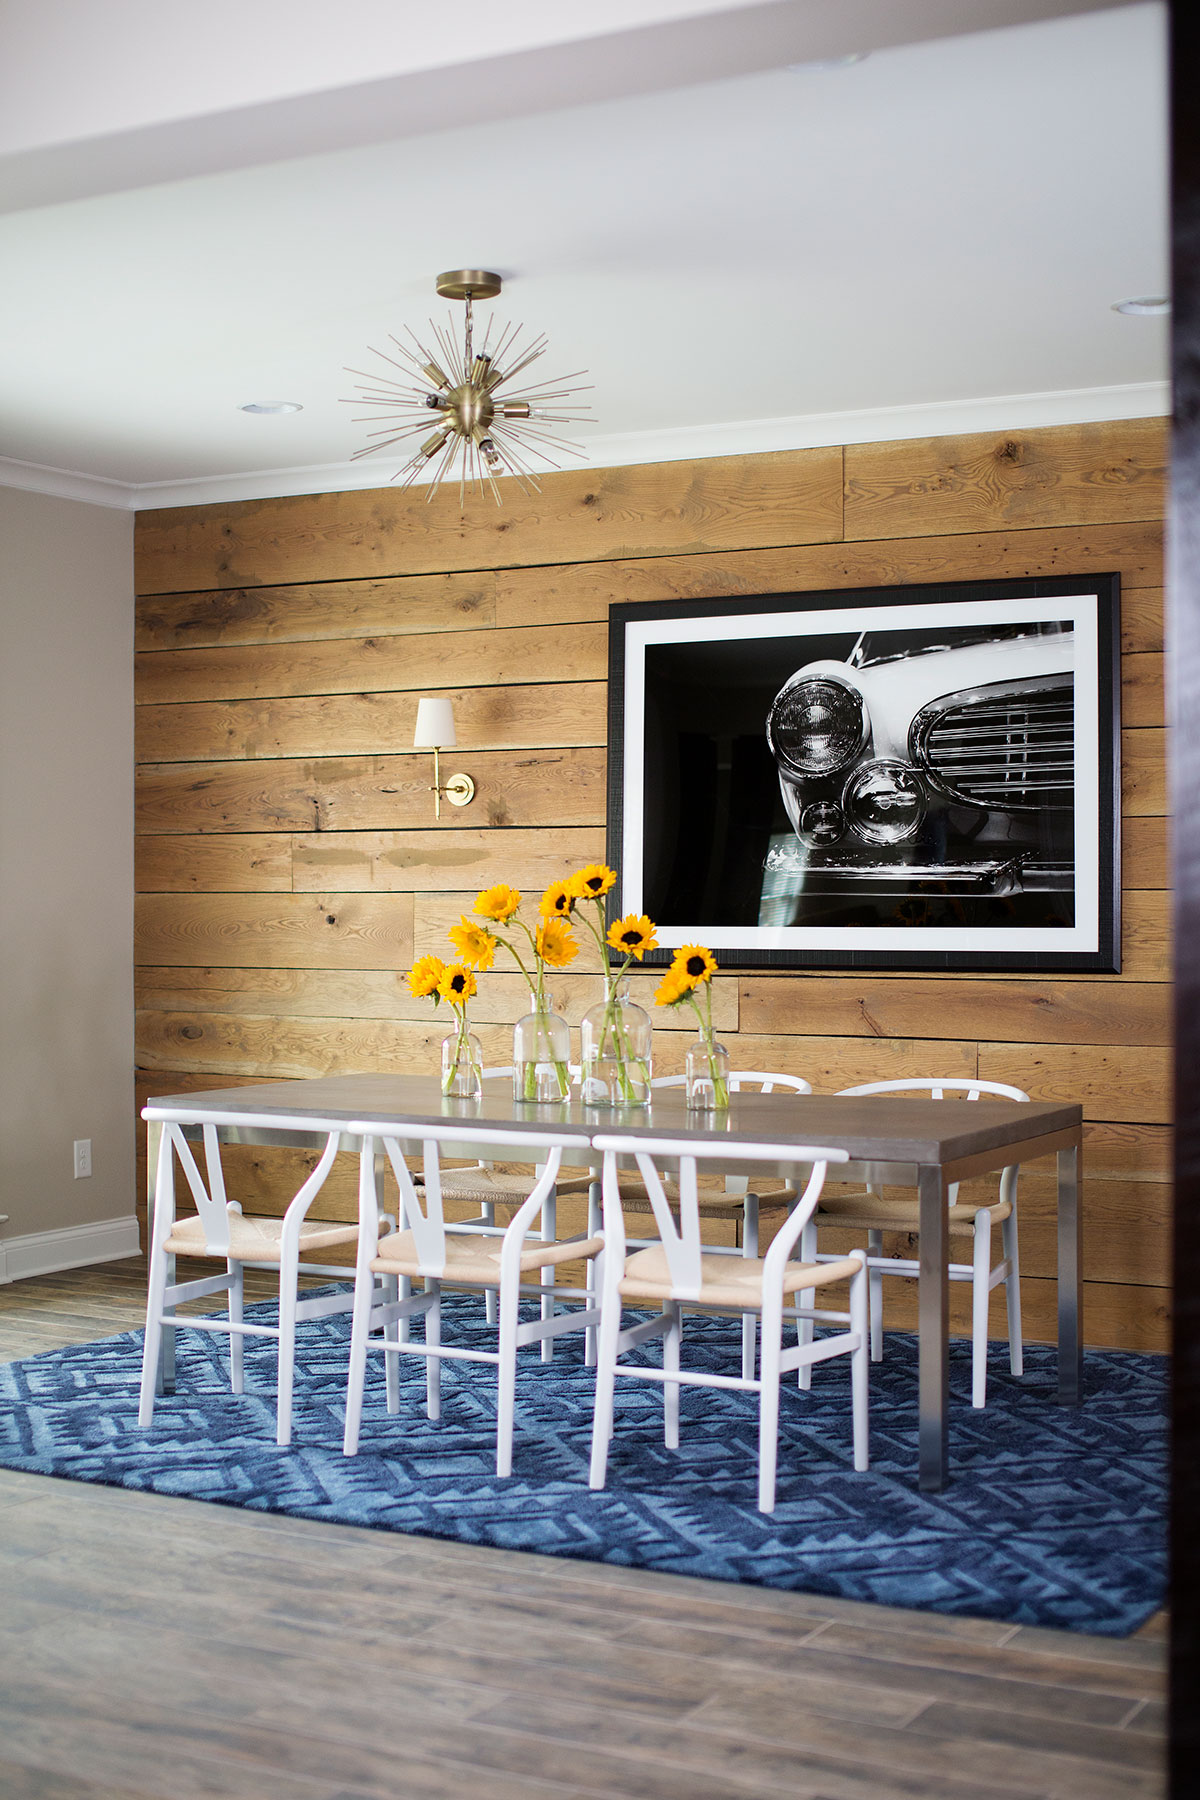 Wood paneled basement dining area with metal table